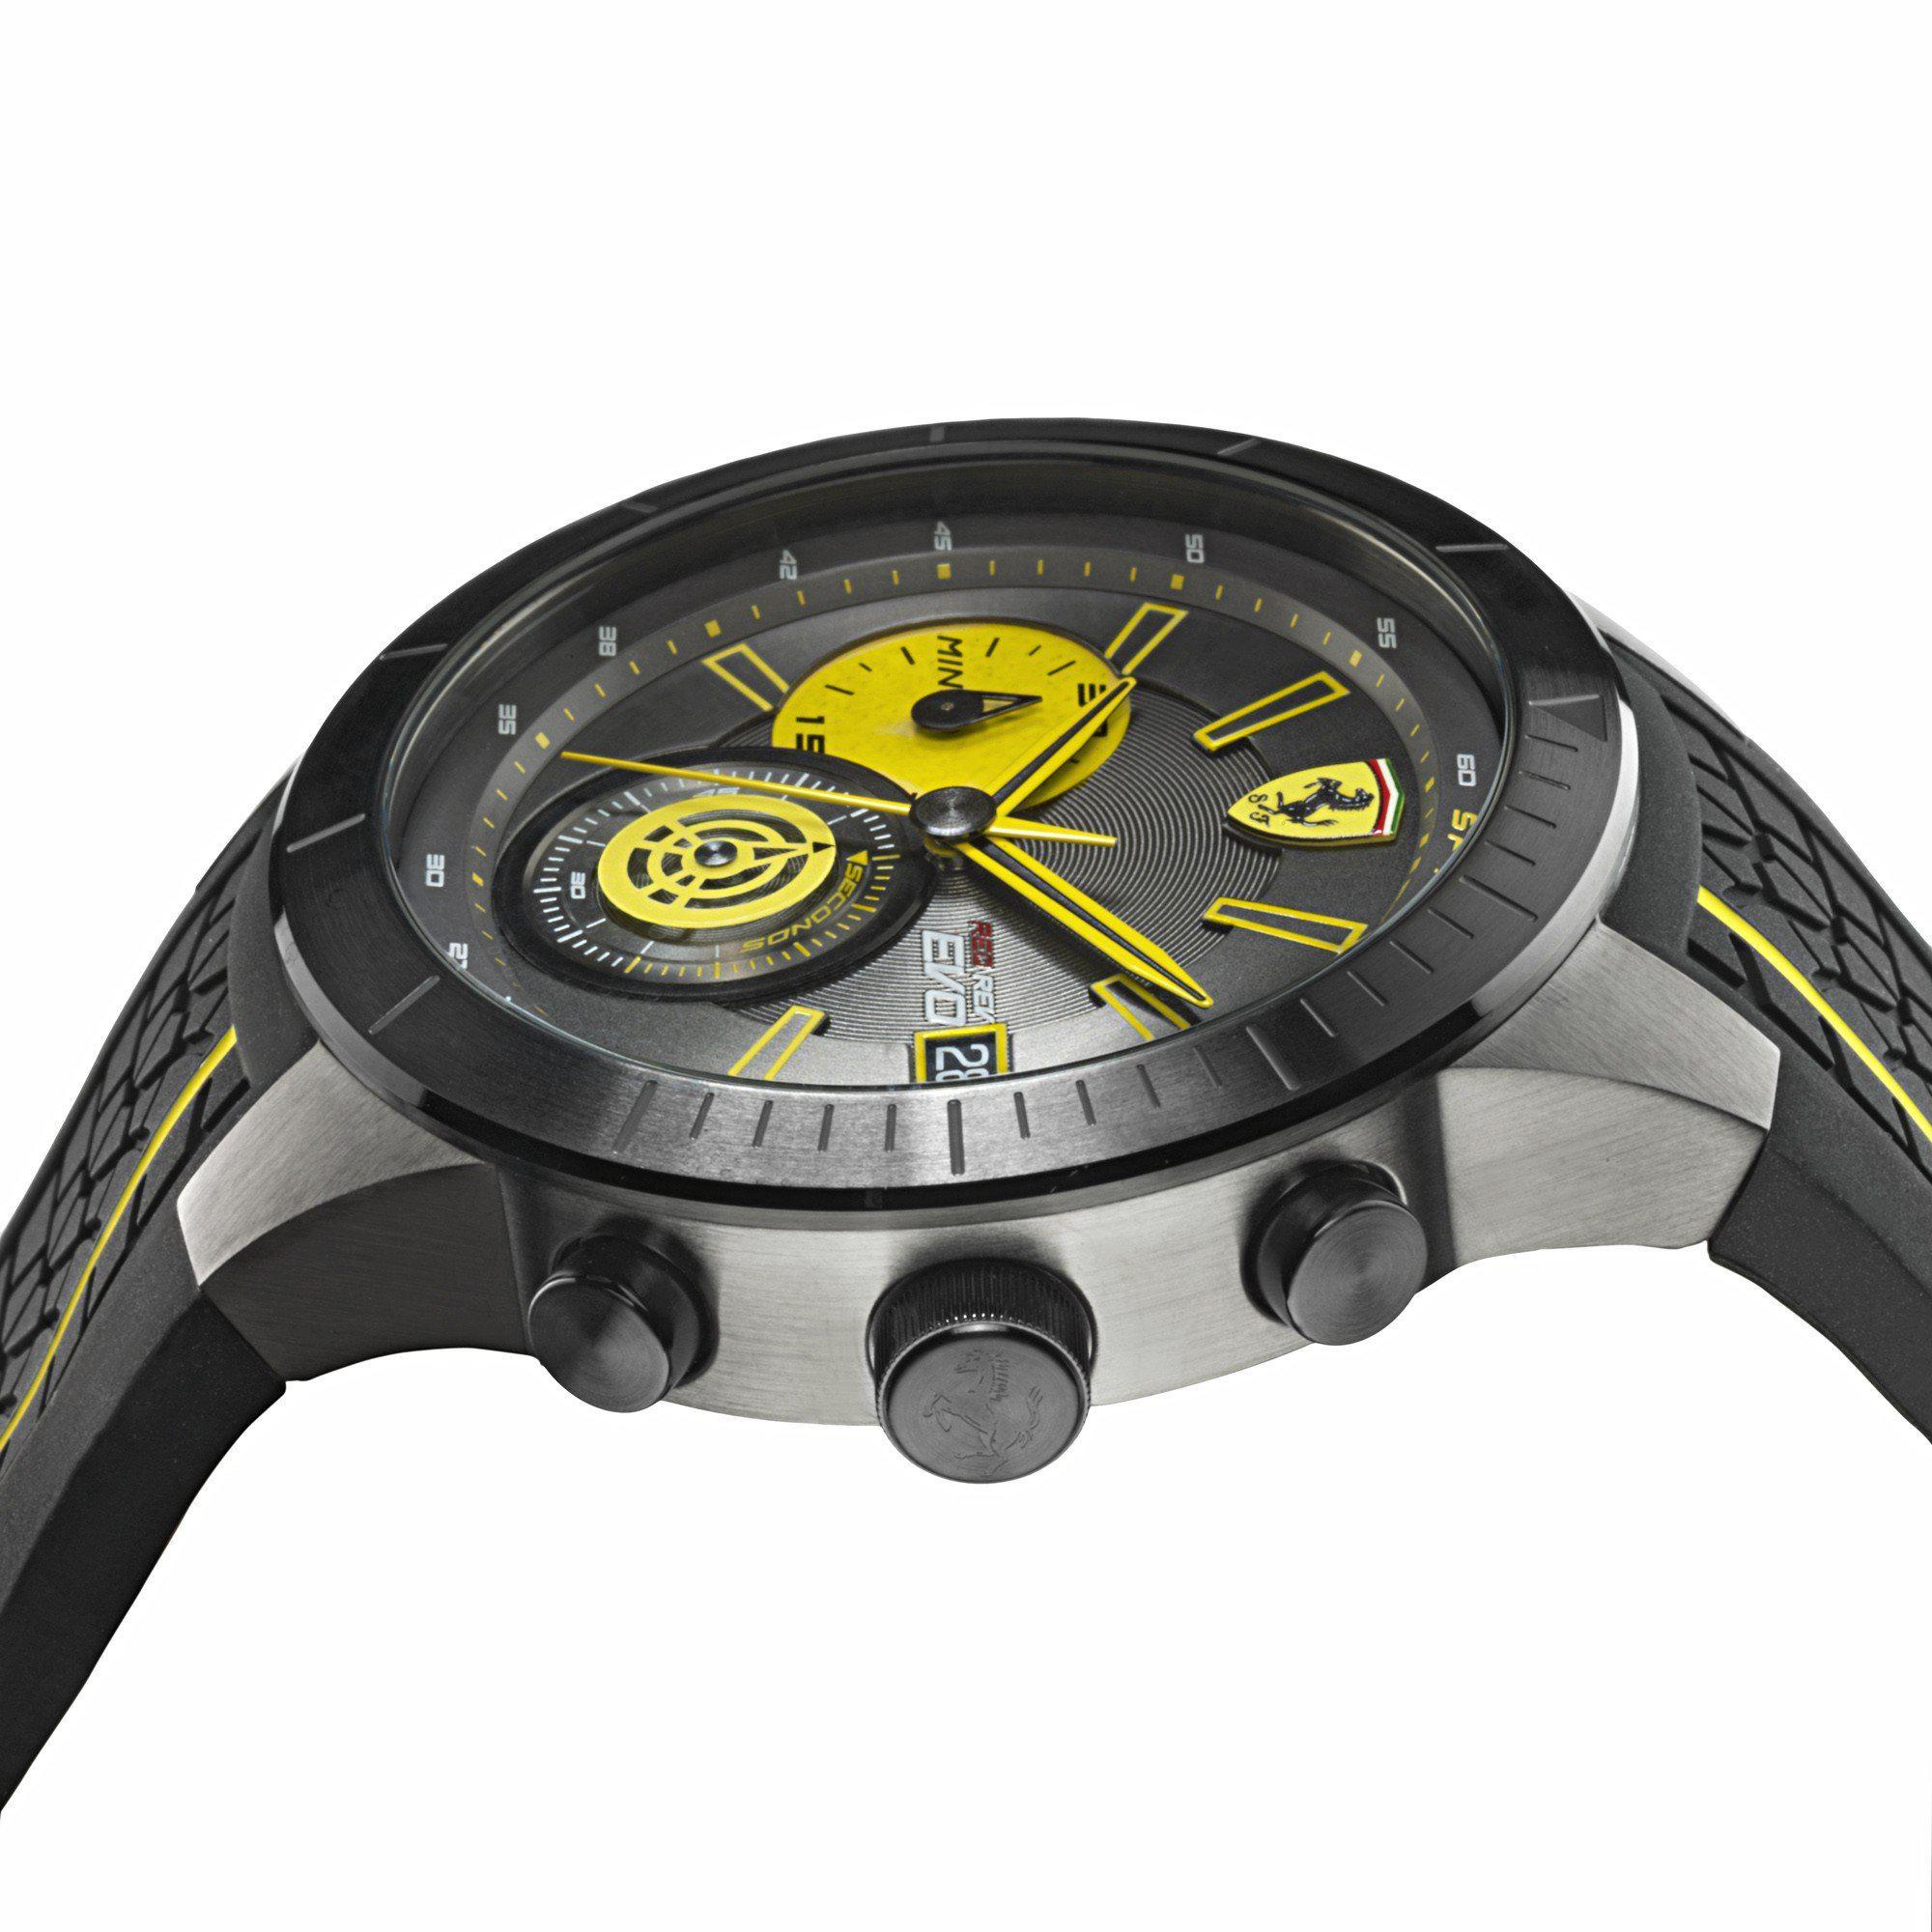 upgrade buy scuderia factory australia your womens now watches ferrari redrev evo the s products men mens watch chronograph